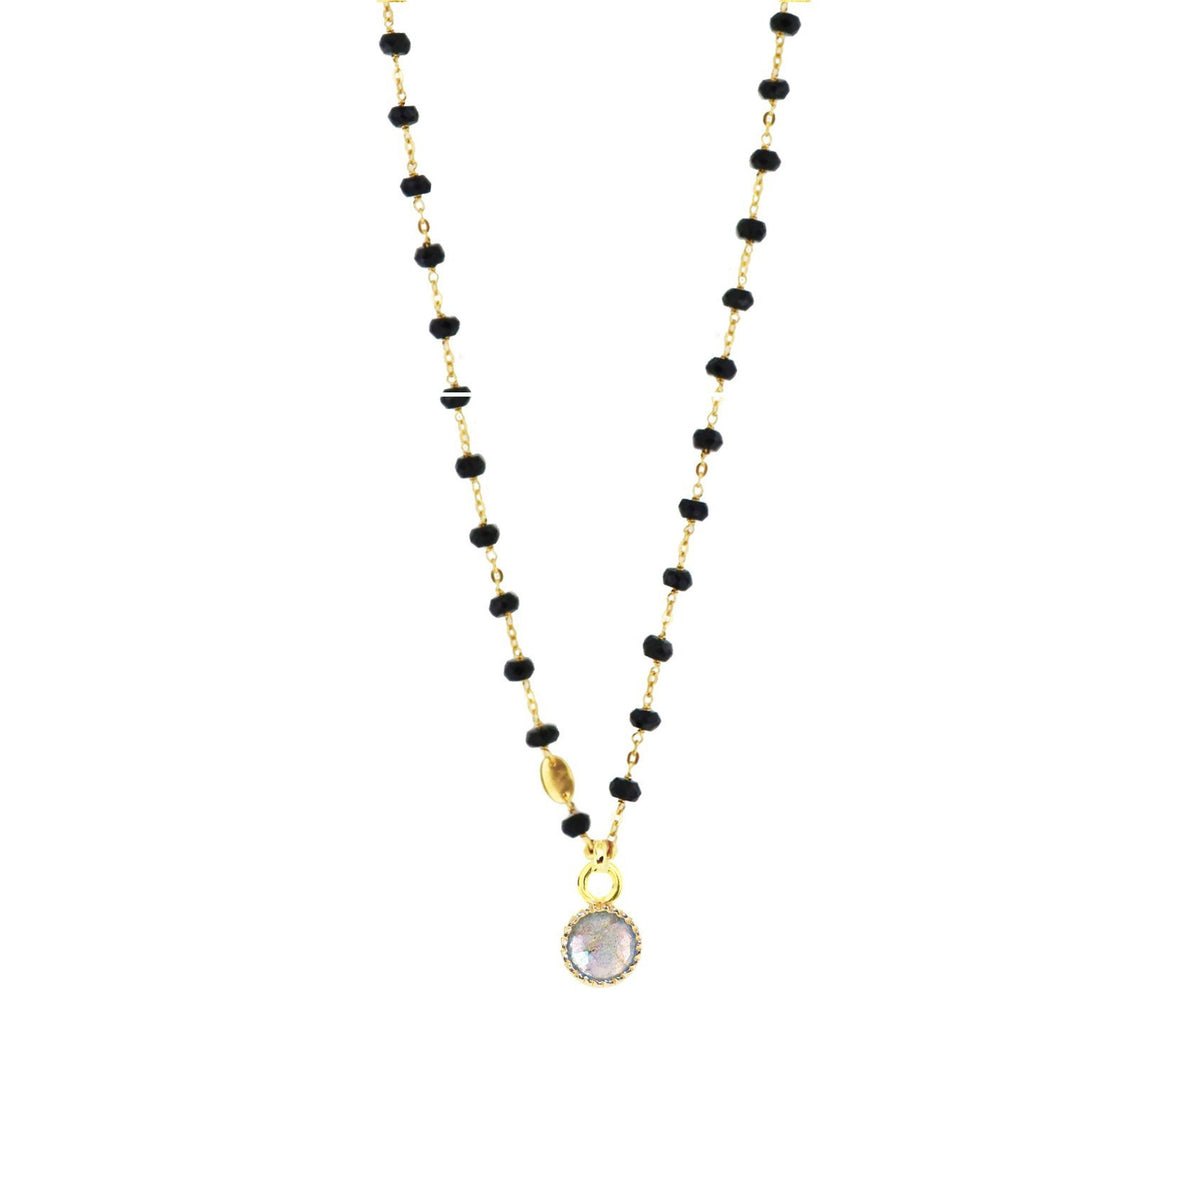 LEGACY ICON - LABRADORITE & GOLD - SO PRETTY CARA COTTER